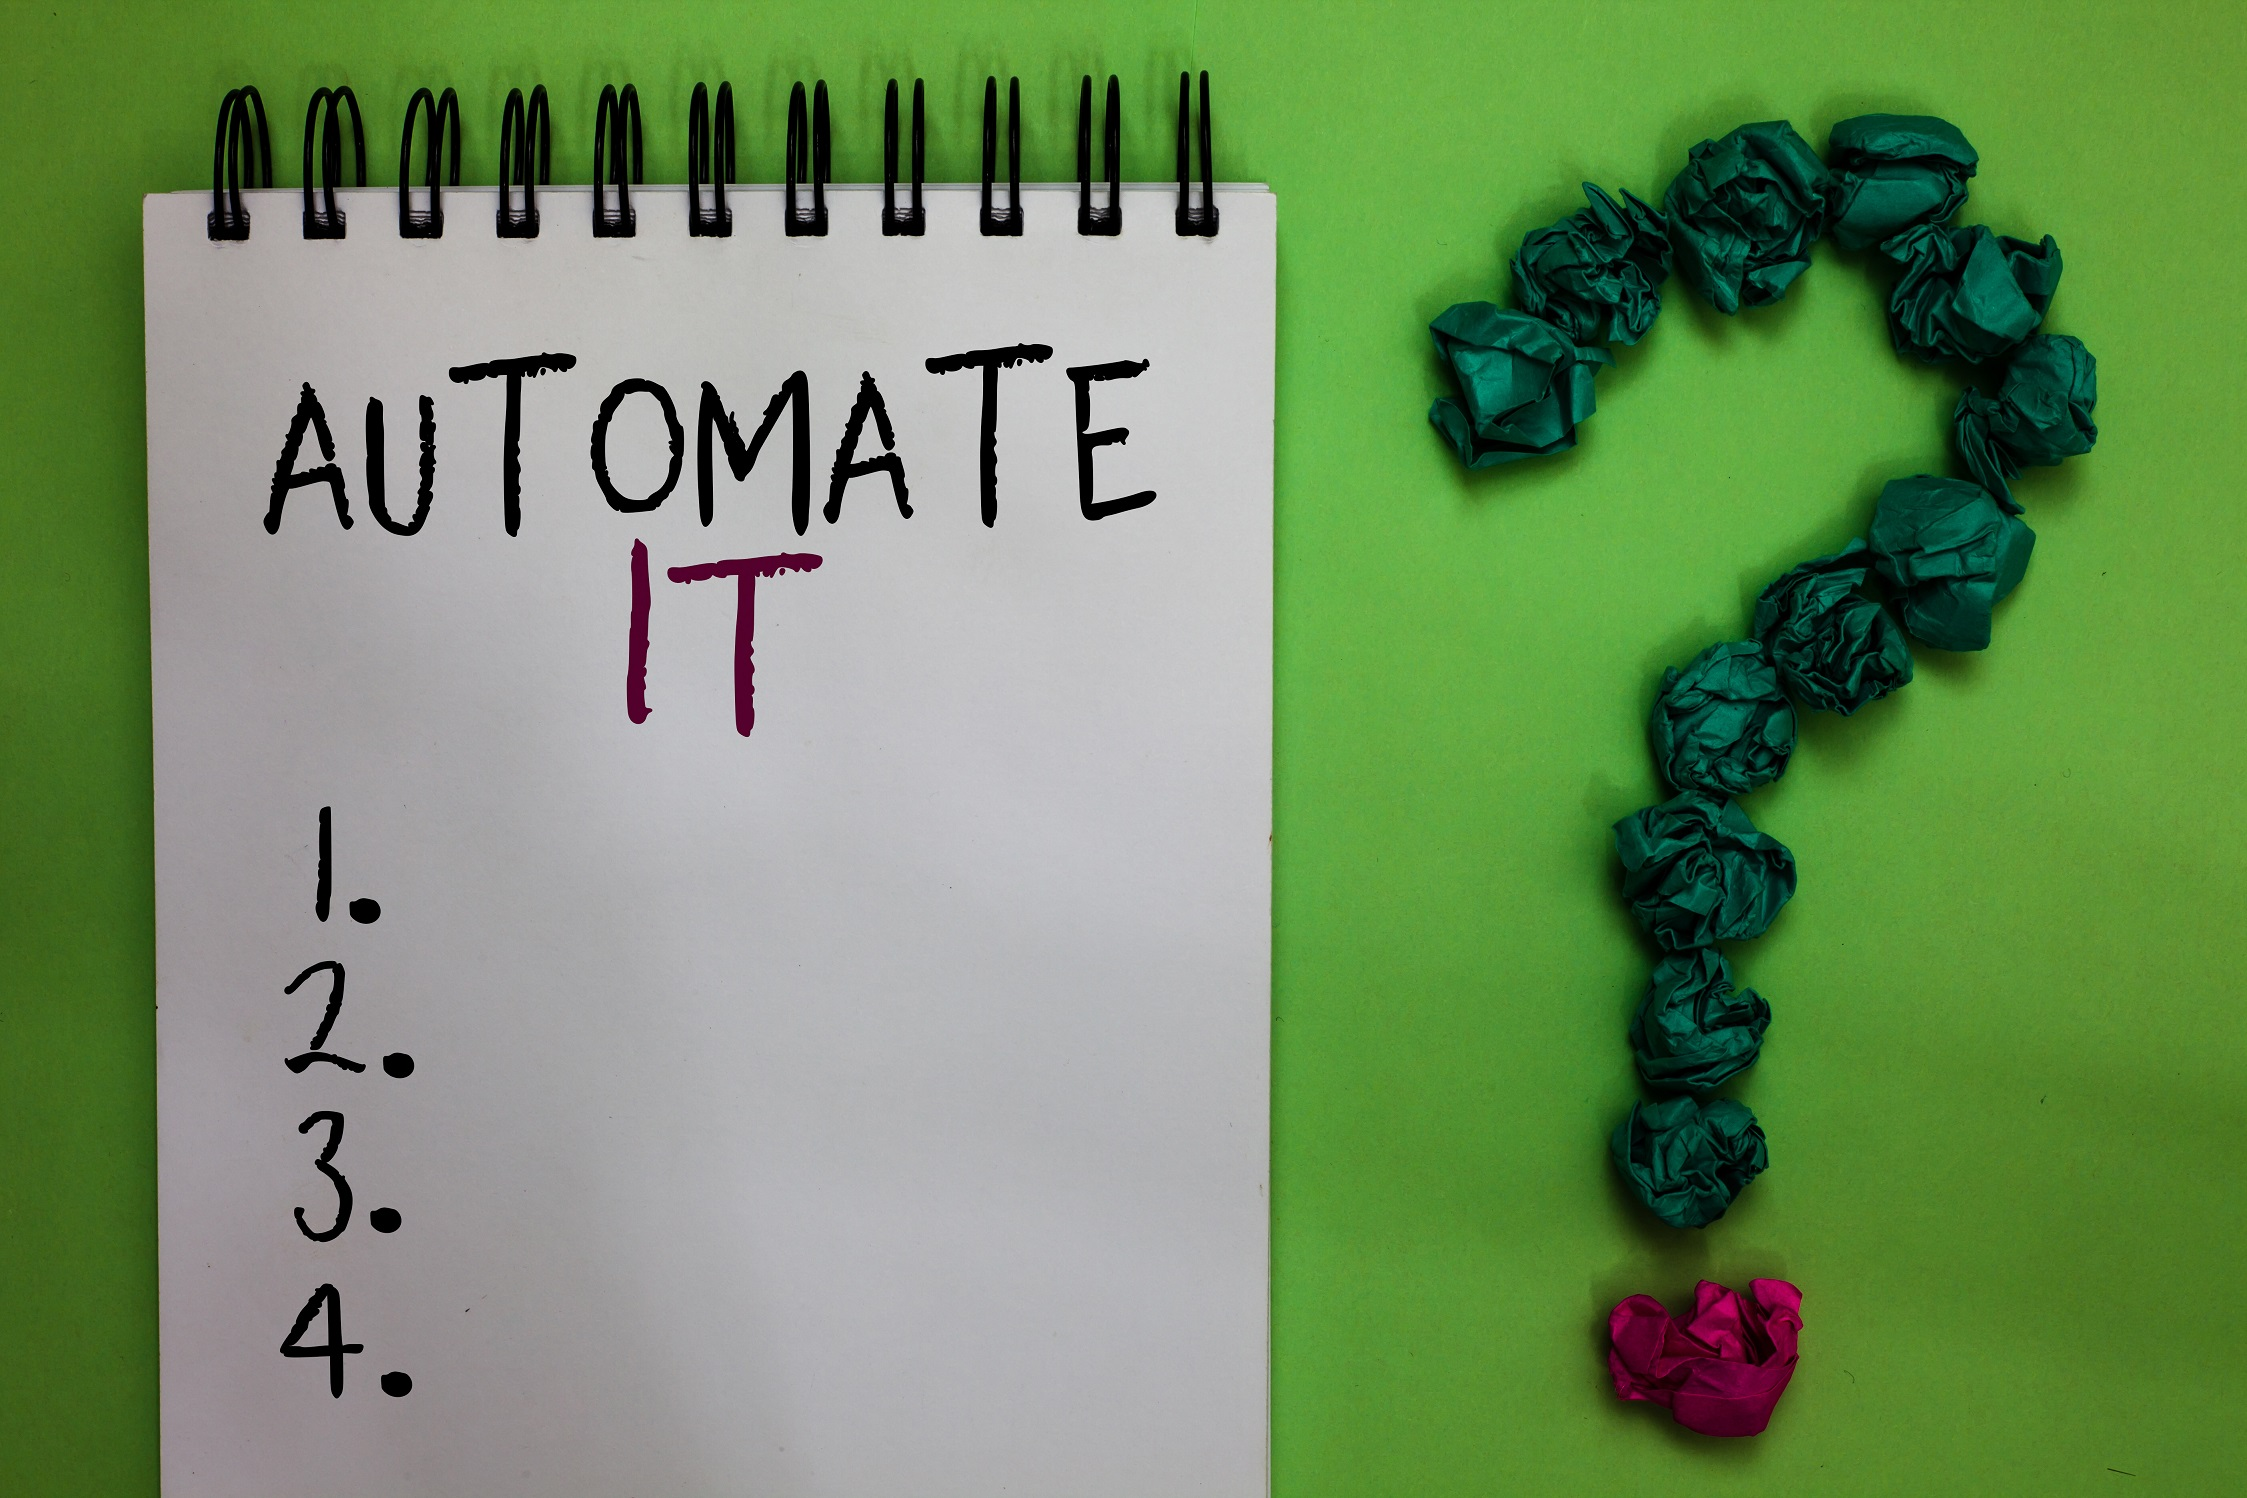 """notepad with heading """"automate it"""" on top, followed by 4 numbered but empty bullet points"""